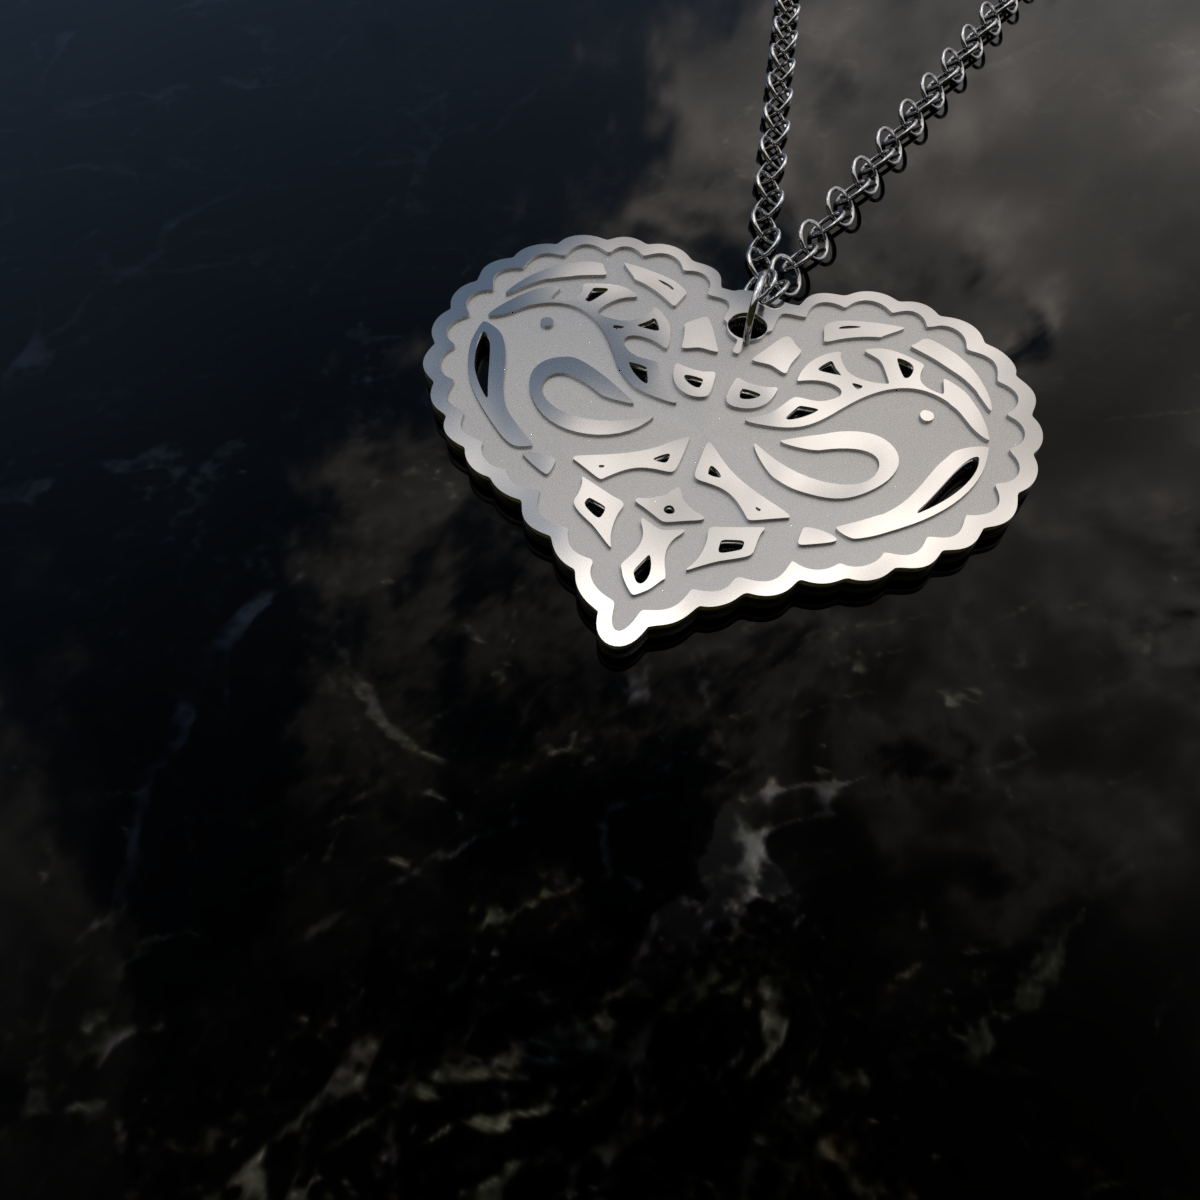 necklace dove turtle number jewellery l product category silver pendant heart necklaces sterling material webstore h samuel diamond